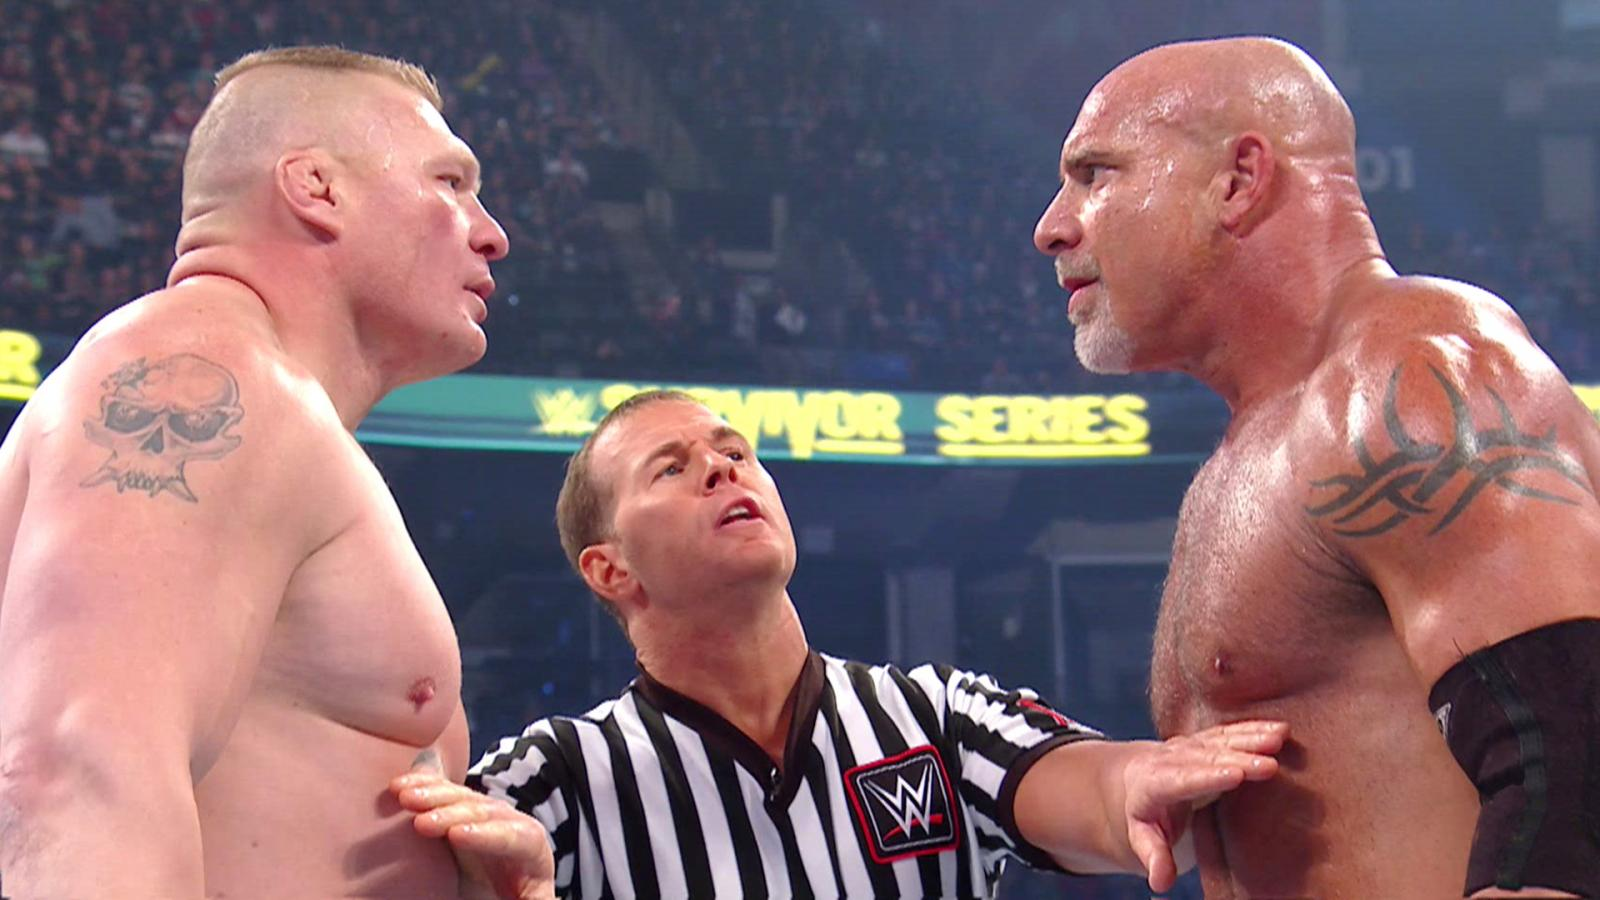 Goldberg Lesnar Survivor Series